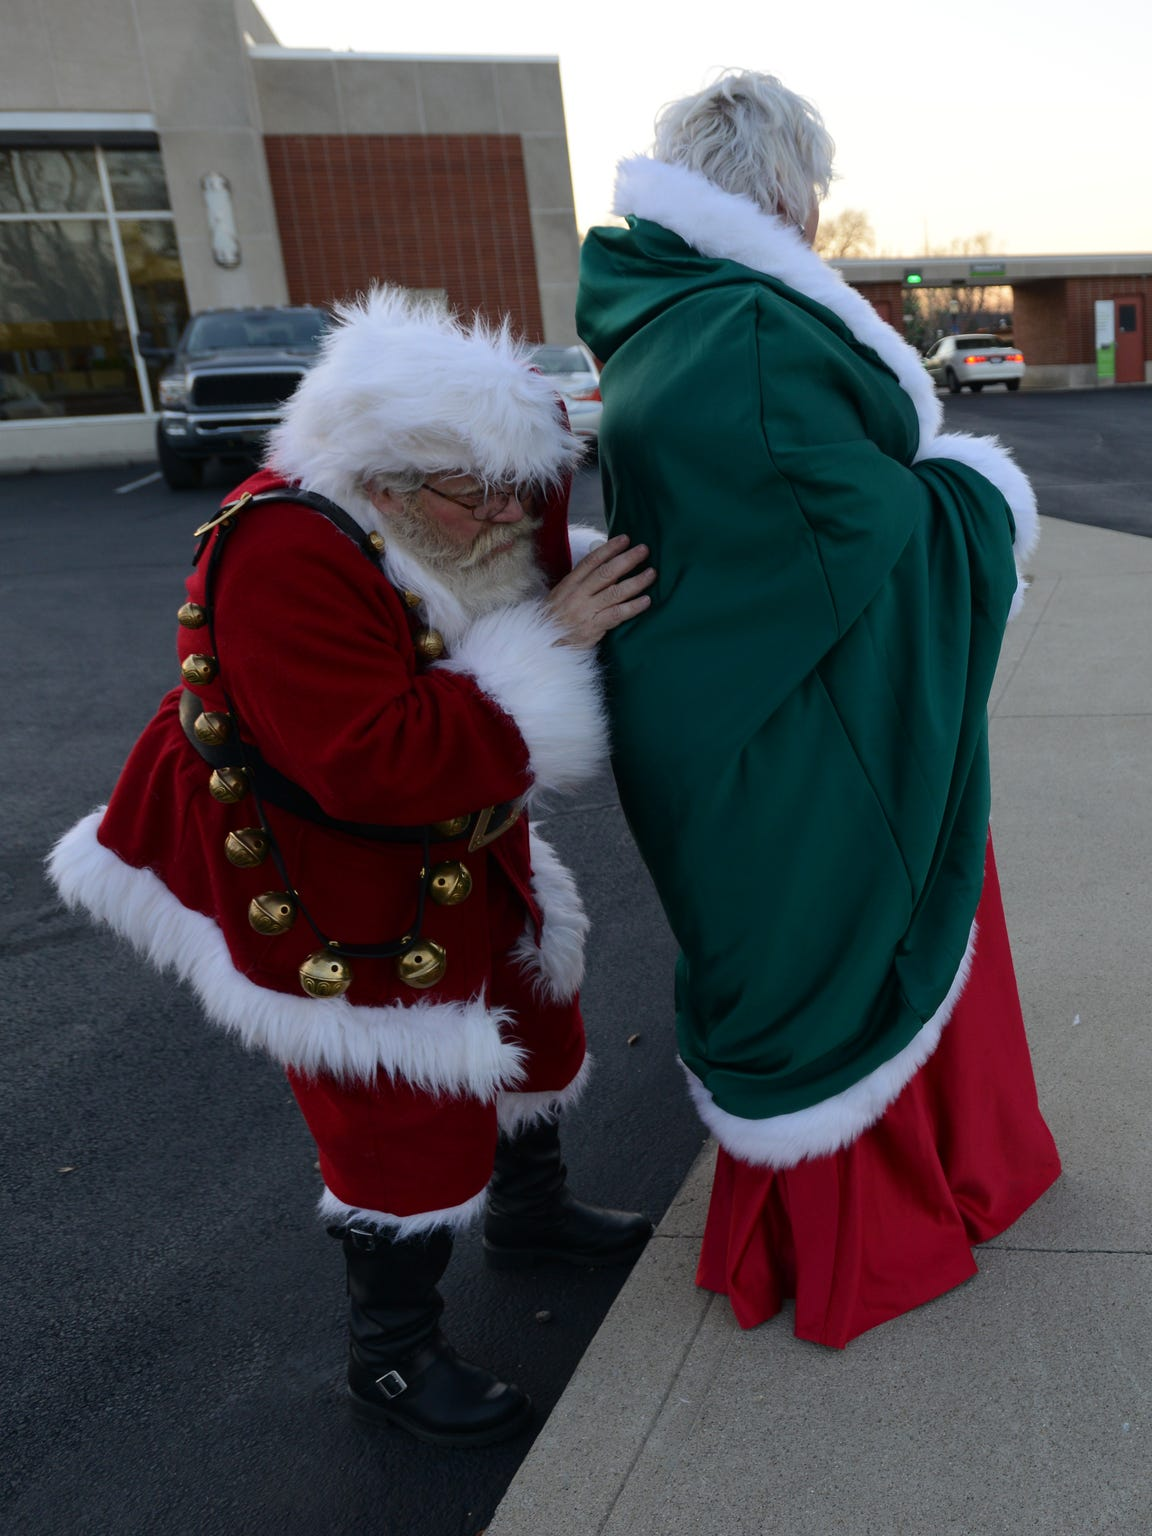 Tim Etienne hides behind his wife Ginny Etienne as he interacts with children as they wait to be picked up before the Canal Winchester holiday light parade, Friday, Dec. 1, 2017. Tim often pretends to be shy when children are afraid or shy around Santa Claus.